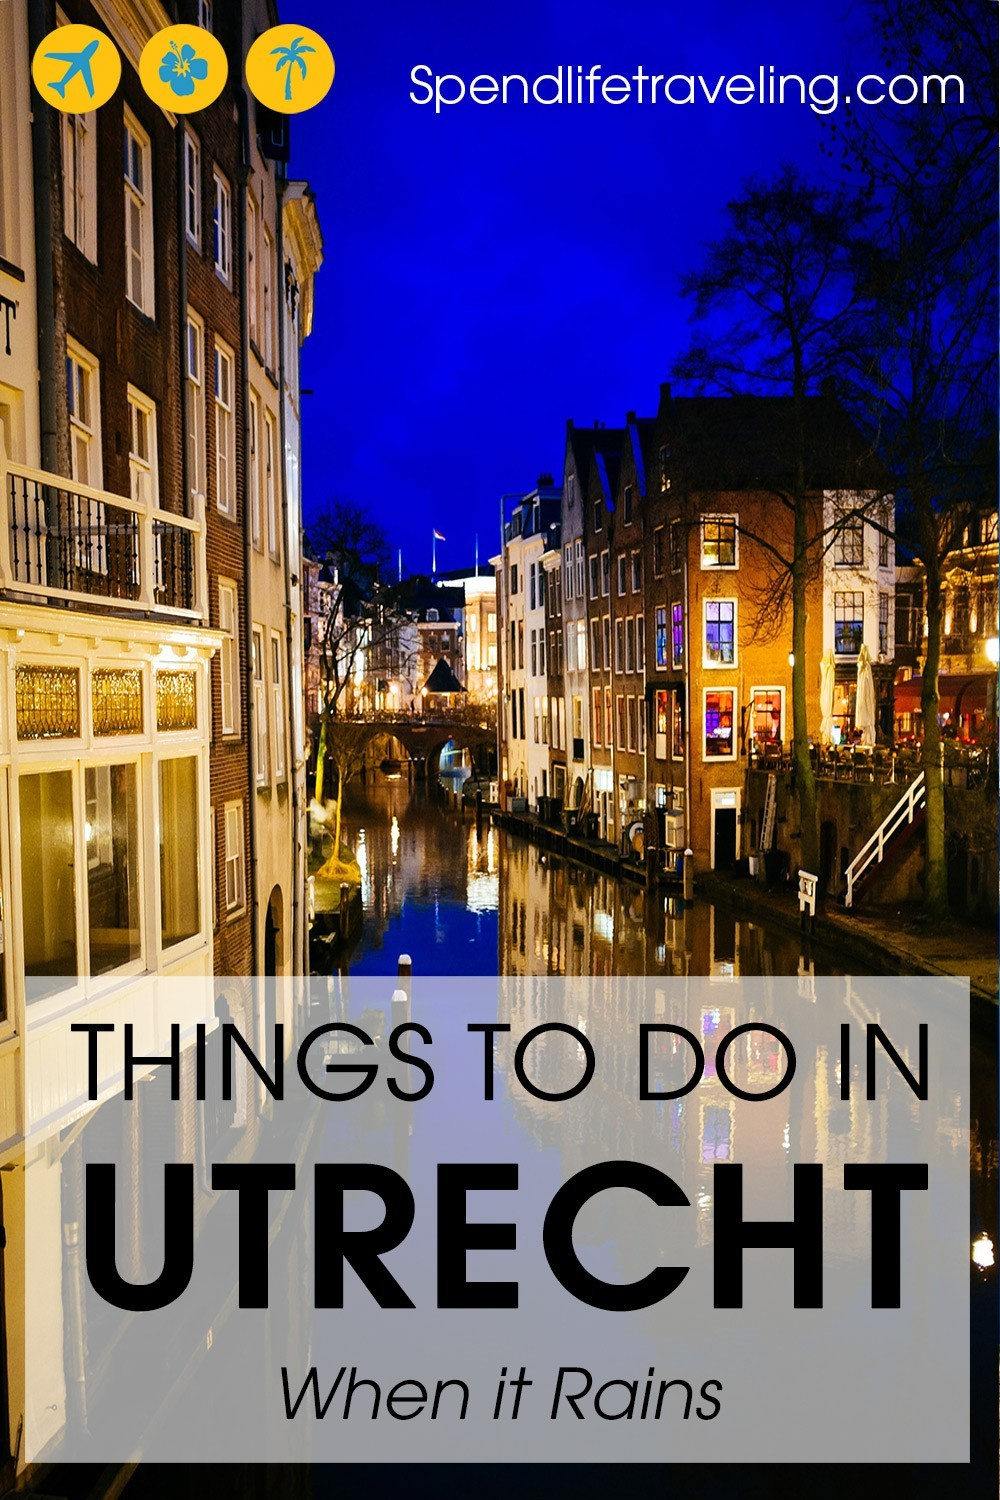 #Utrecht is one of the top cities to visit in the Netherlands. But, it does rain often. Check out these tips for what to do in Utrecht when it rains, and on sunnier days. #TheNetherlands #Holland #visitHolland #traveltips #citybreak #weekendgetaway #travelEurope